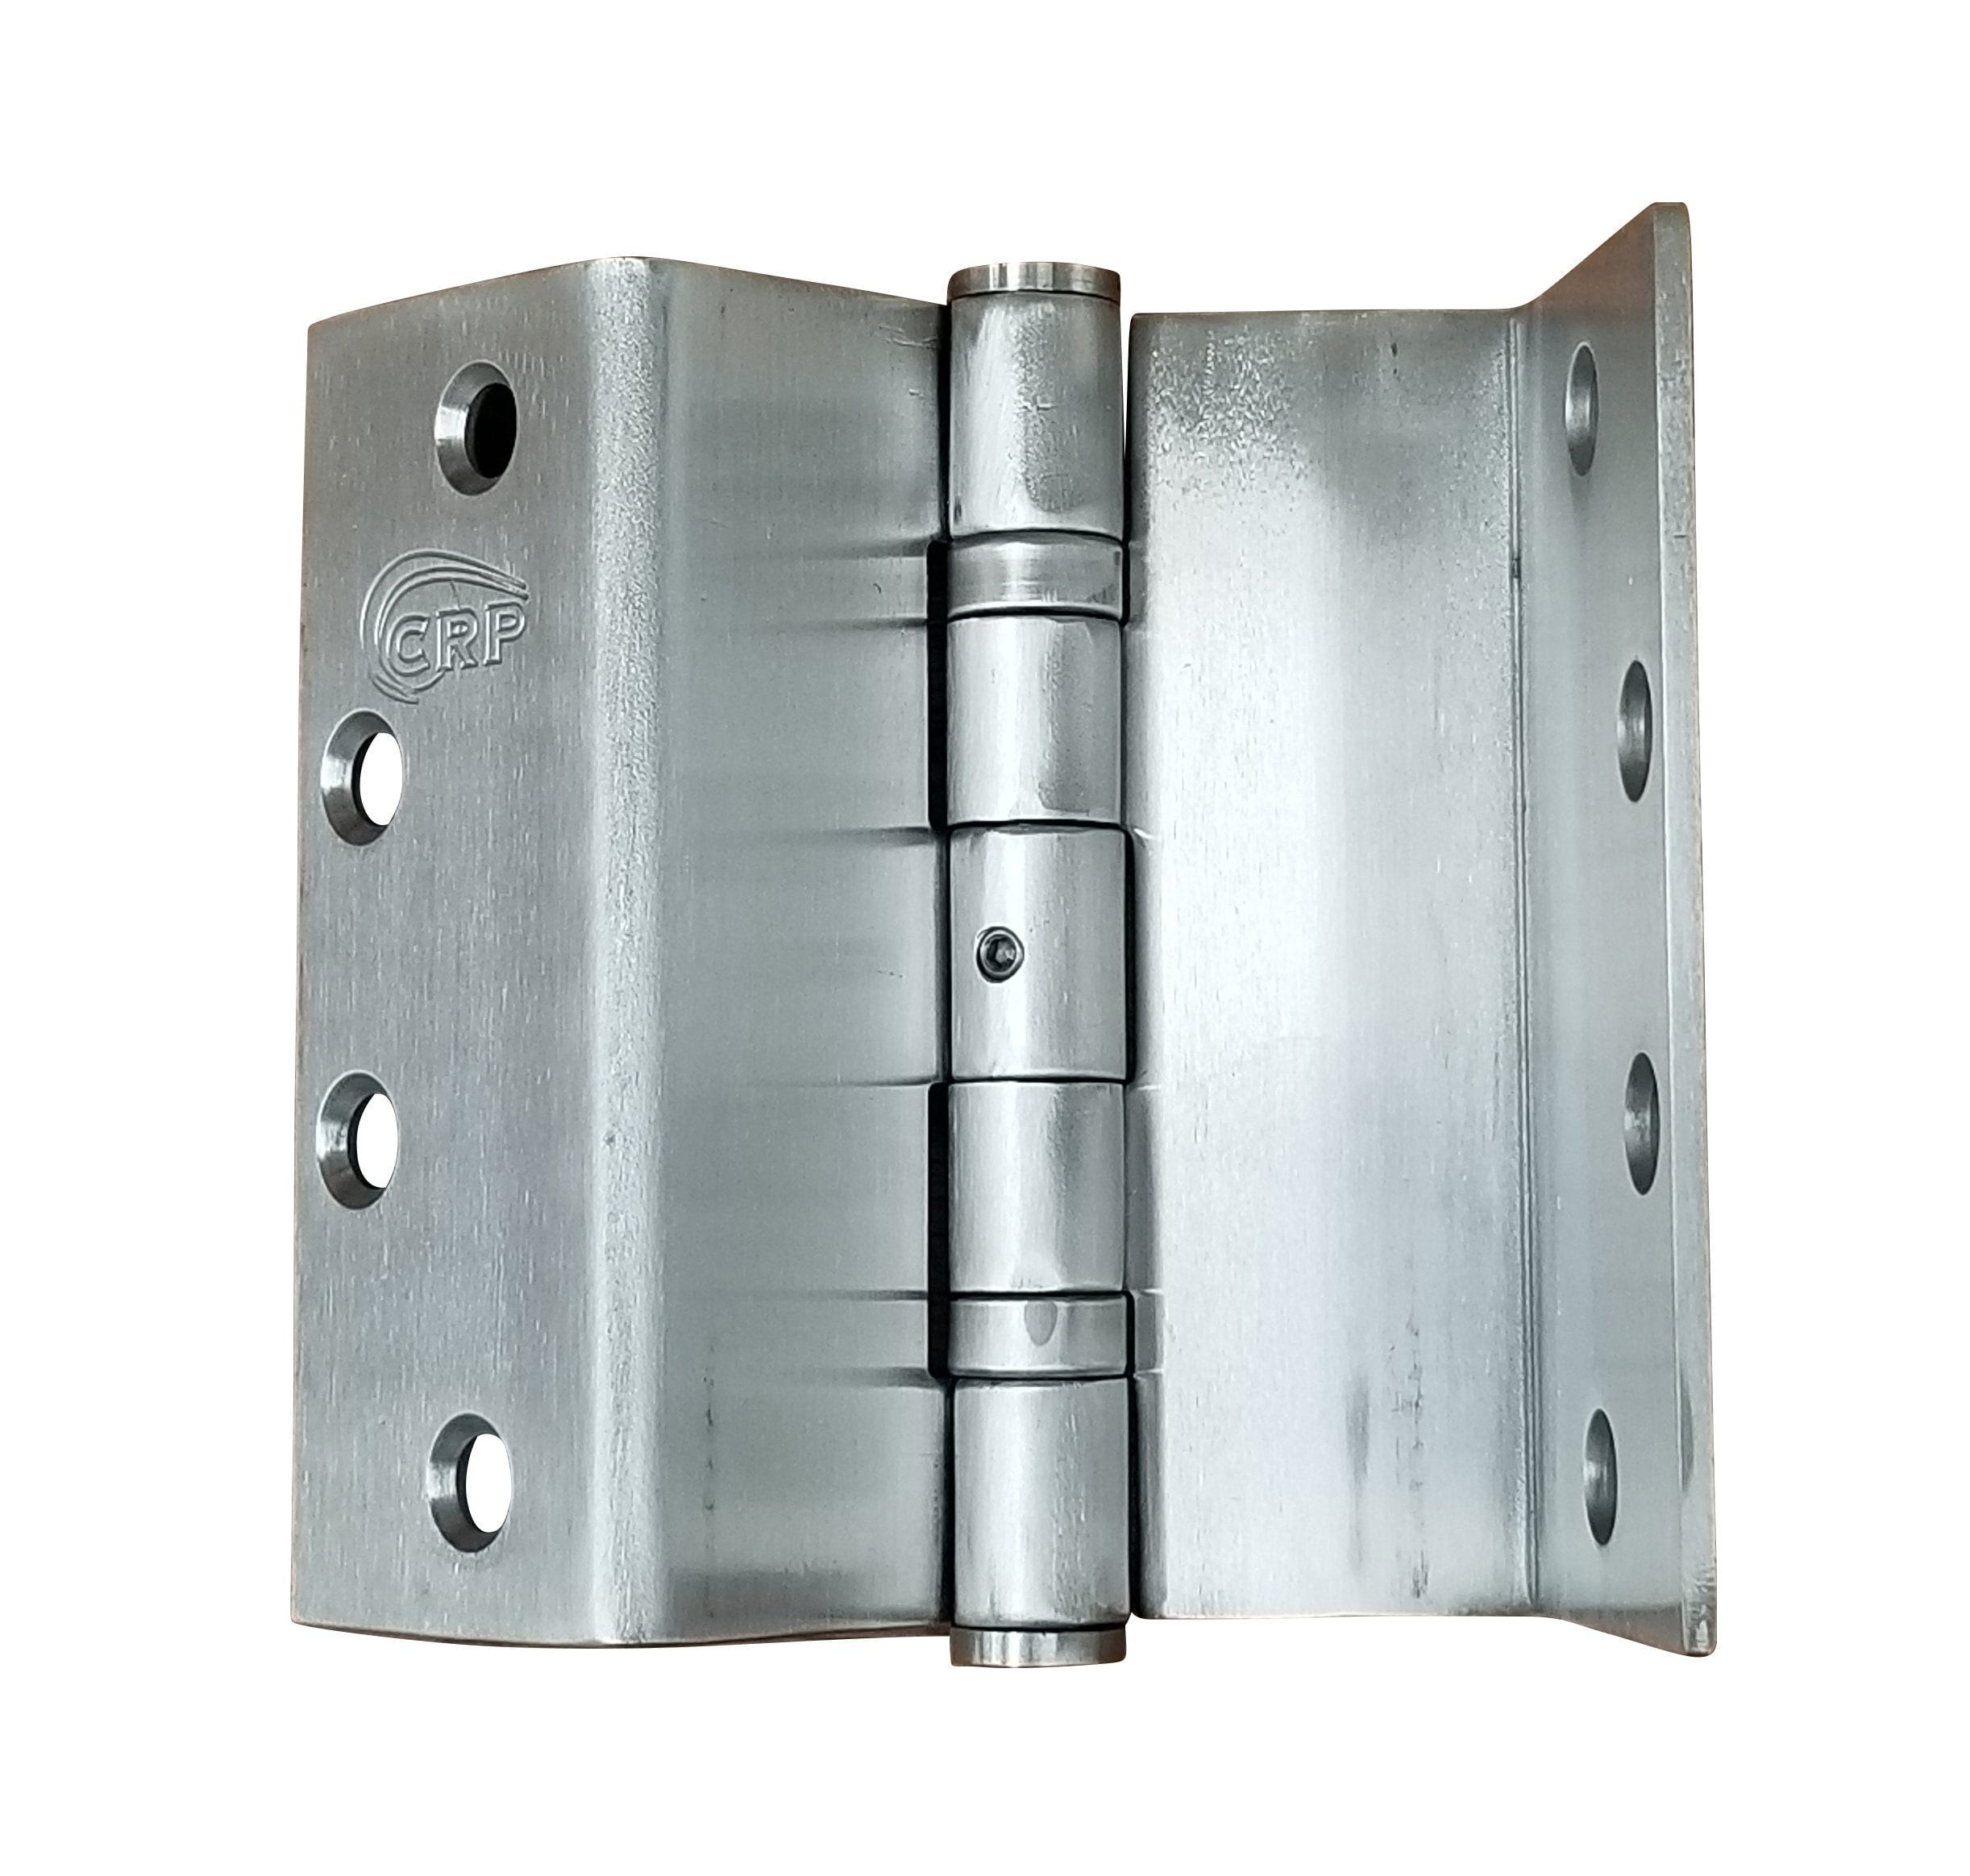 "Swing Clear Hinges - Swing Clear Standard Weight Ball Bearing Door Hinges - 4.5"" - Full Mortise - Stainless Steel - Rust Resistant - Sold Individually"